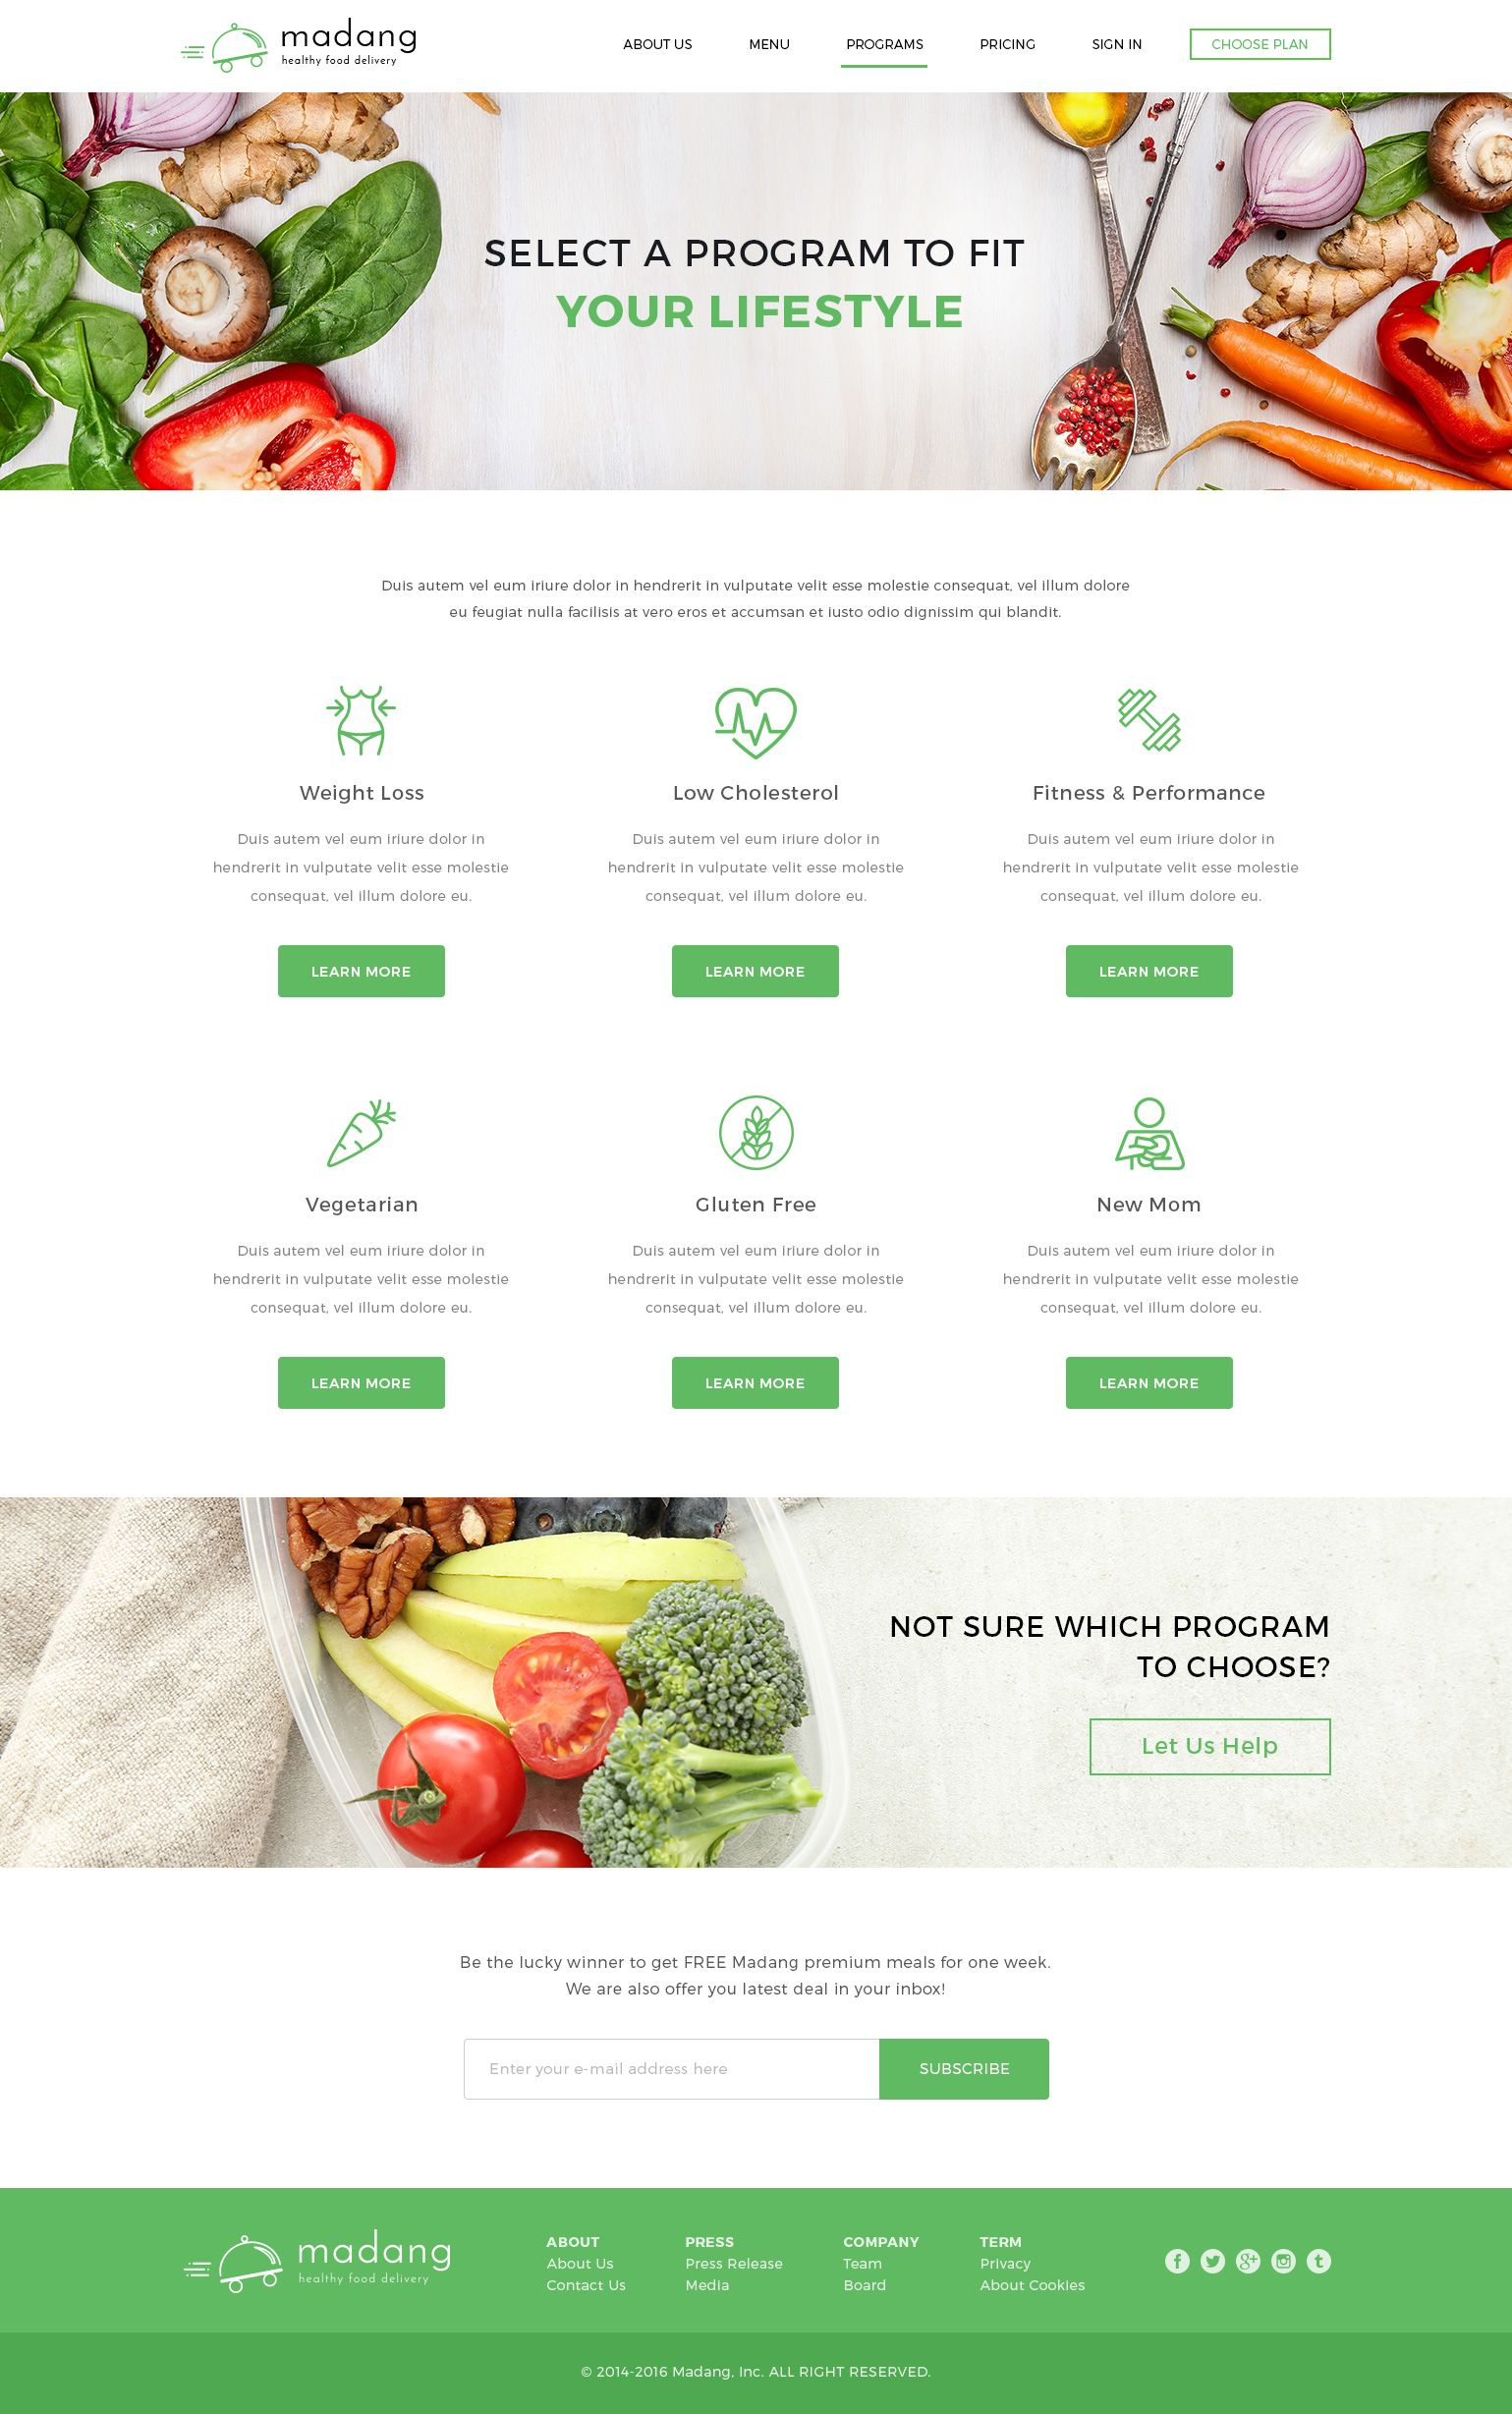 Madang Healthy Food Delivery Psd Template Food Healthy Madang Template ウェブアプリ Webデザイン デザイン